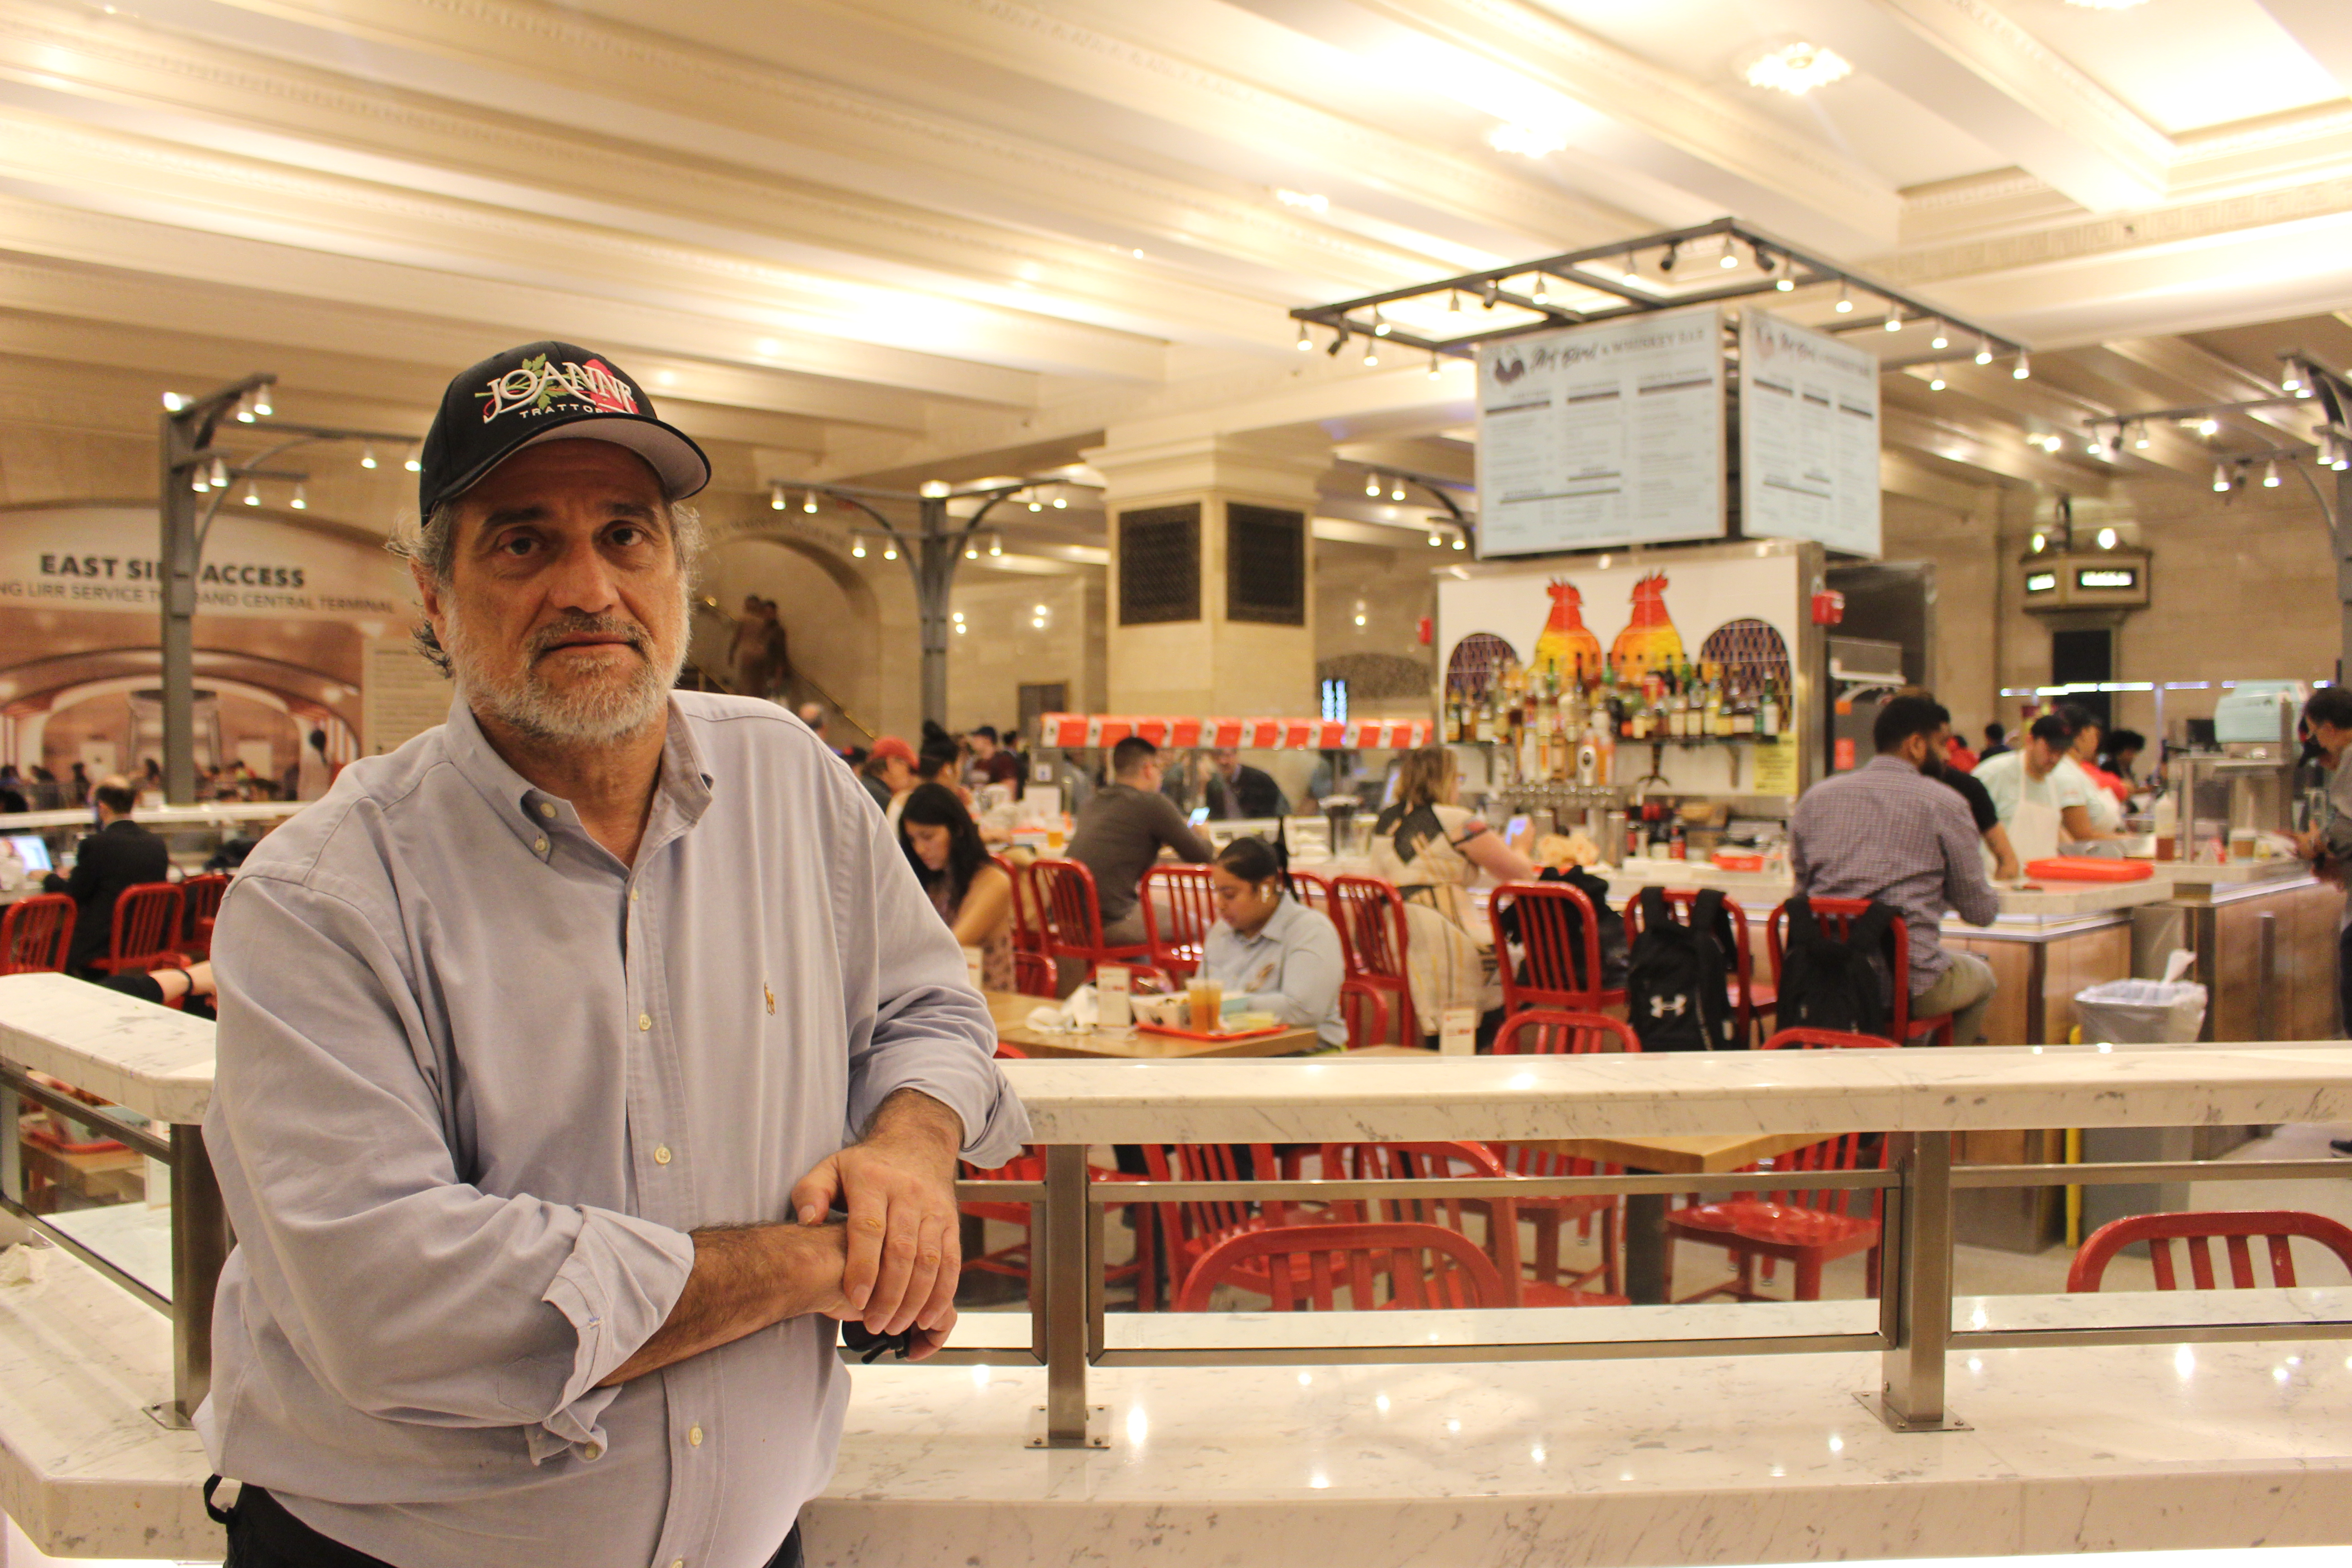 Why Lady Gaga's dad, Joe Germanotta is refusing to pay rent on his Grand Central restaurant